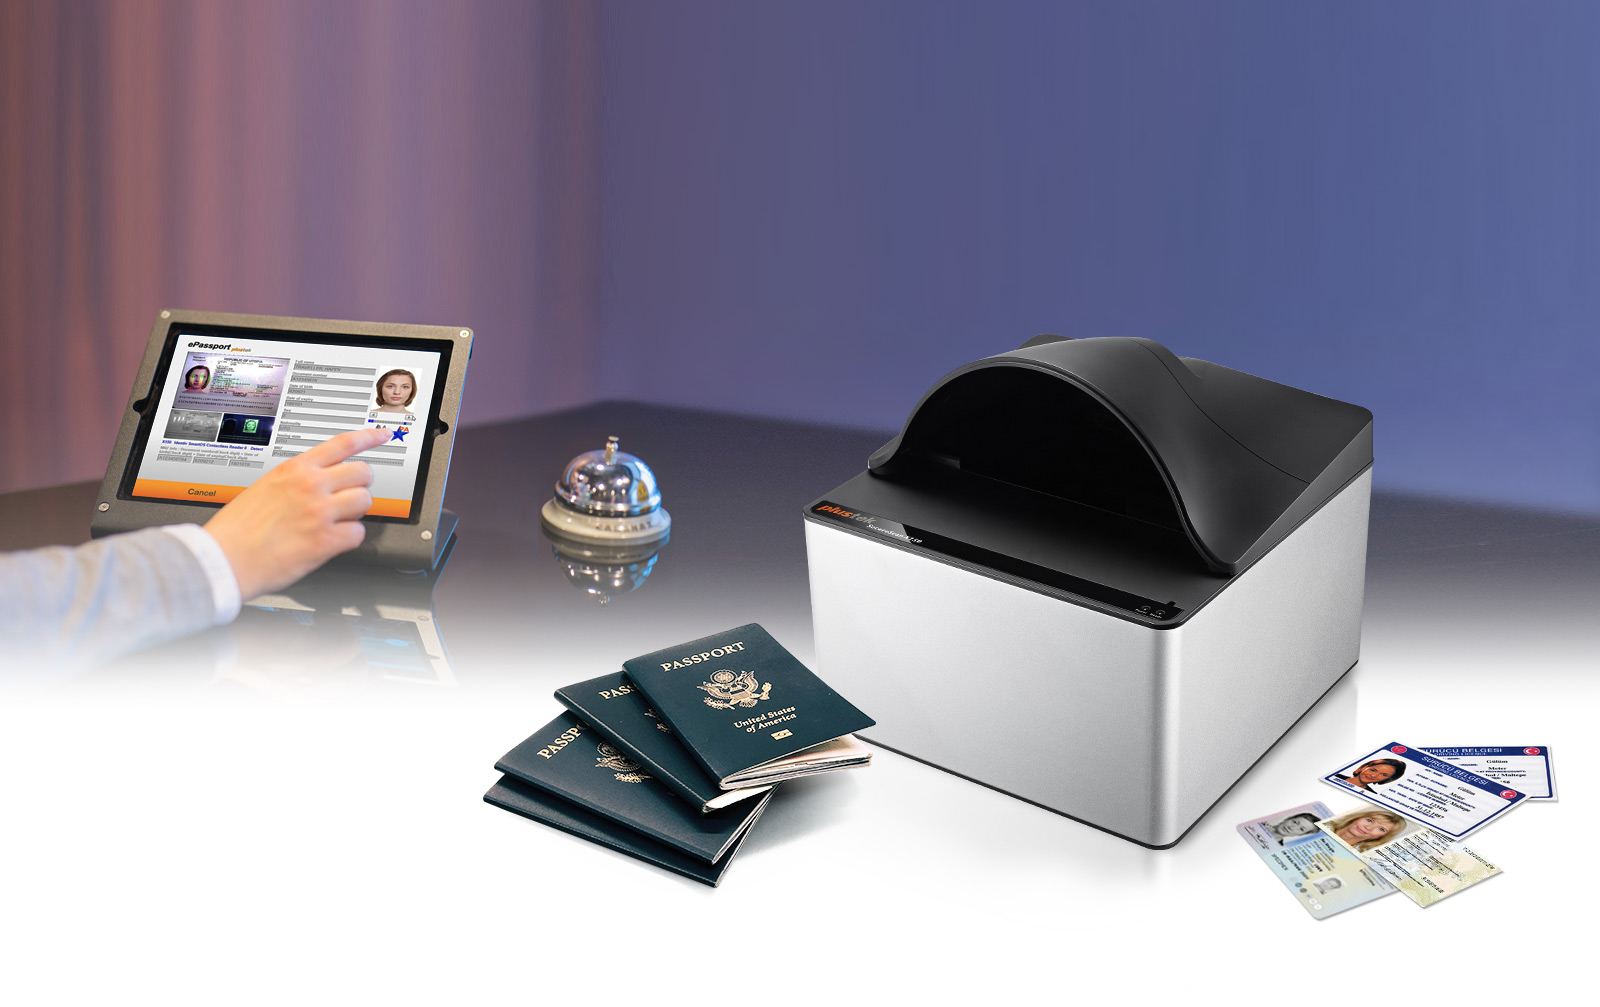 ID cards and passports reader